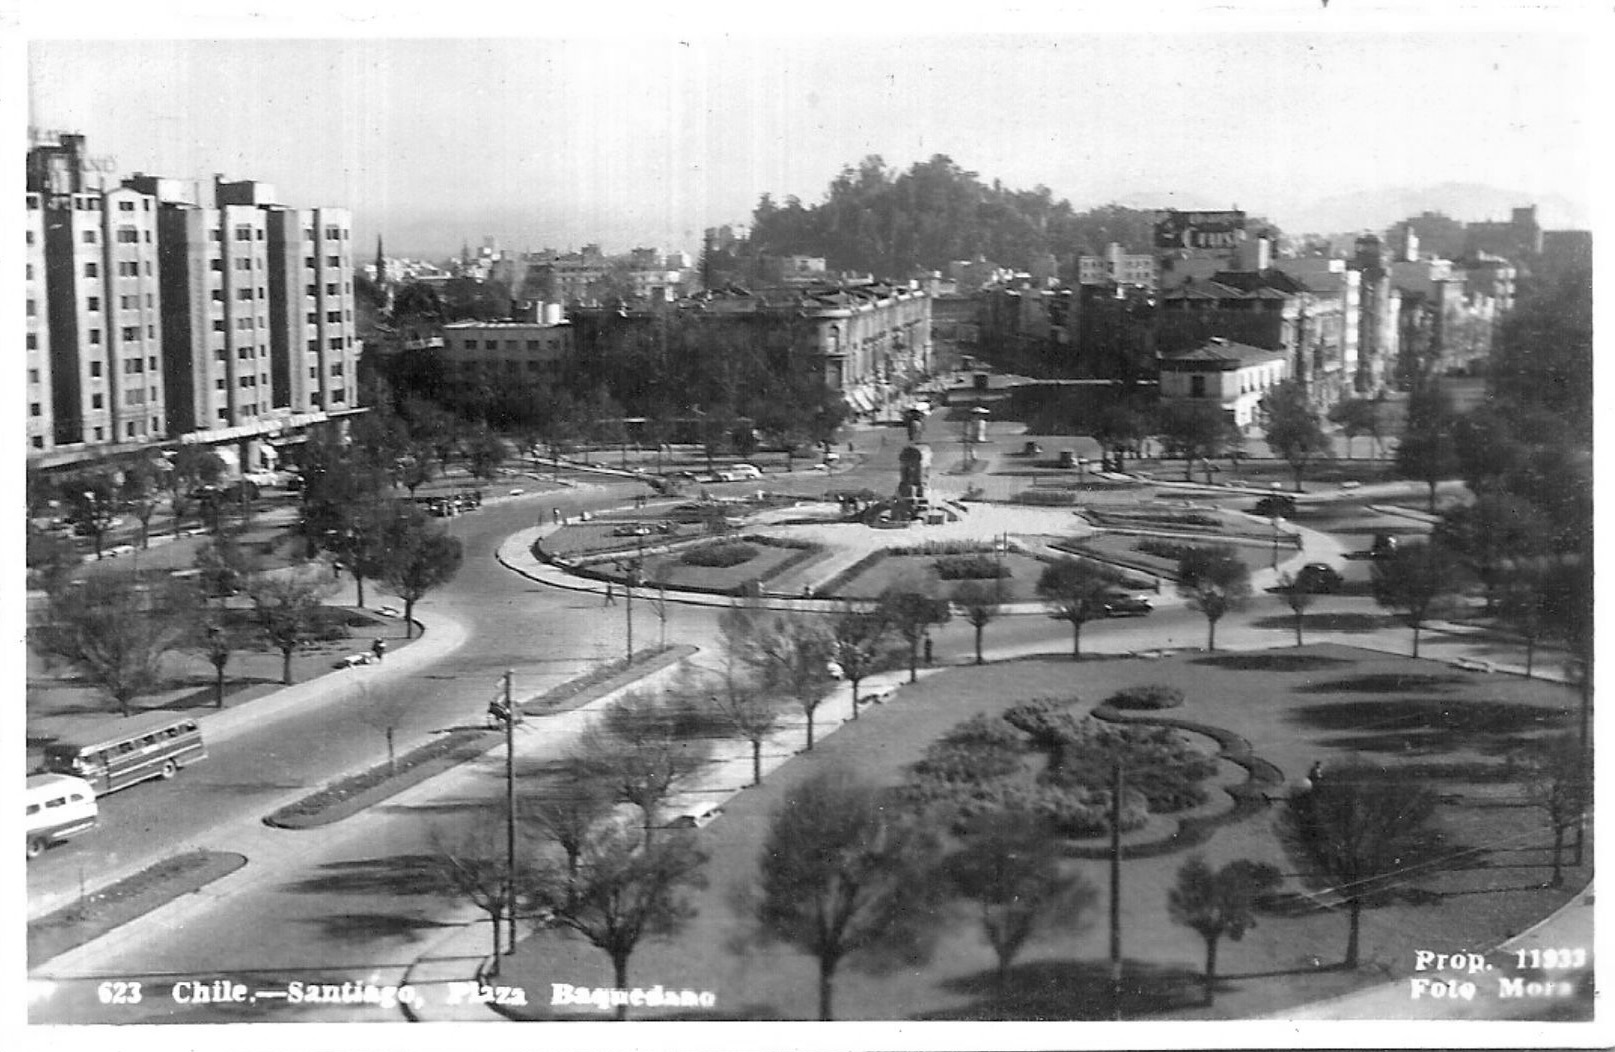 Enterreno - Fotos históricas de chile - fotos antiguas de Chile - Plaza Baquedano de Santiago en 1946